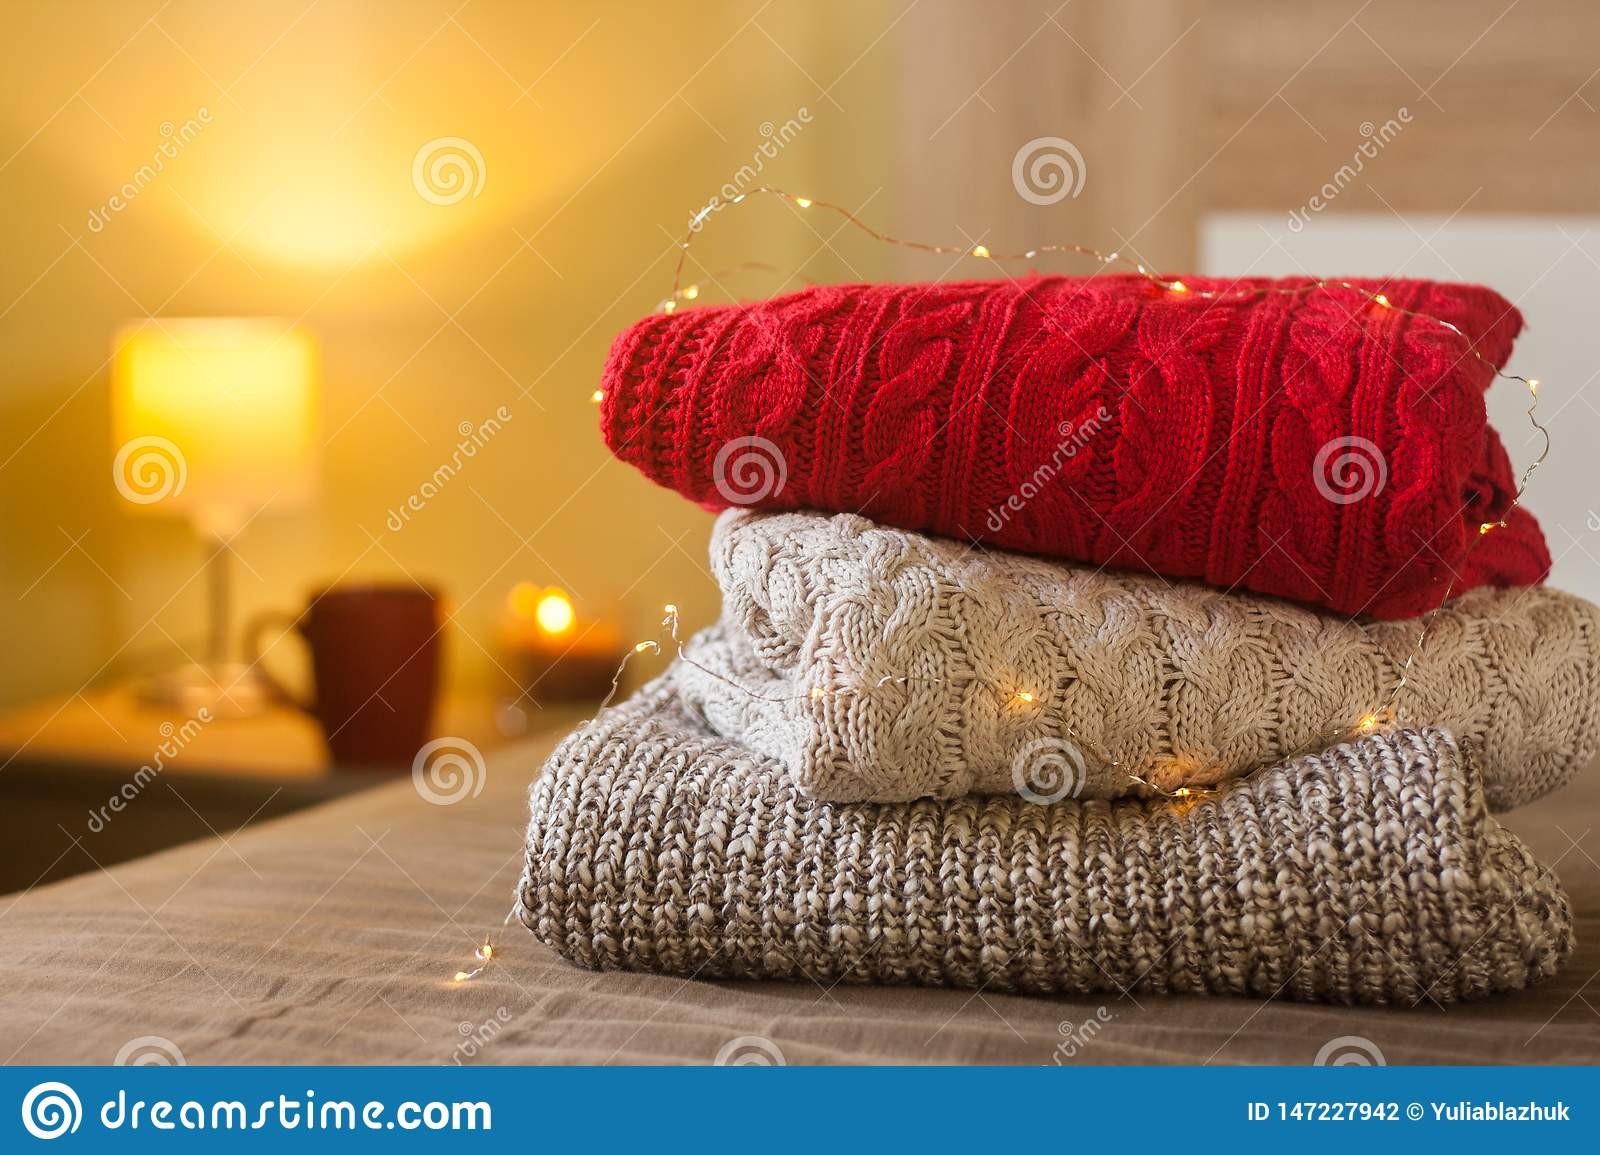 Stack of warm knitted sweaters on a bed decorated with lights and lamp, cup and candle in the background